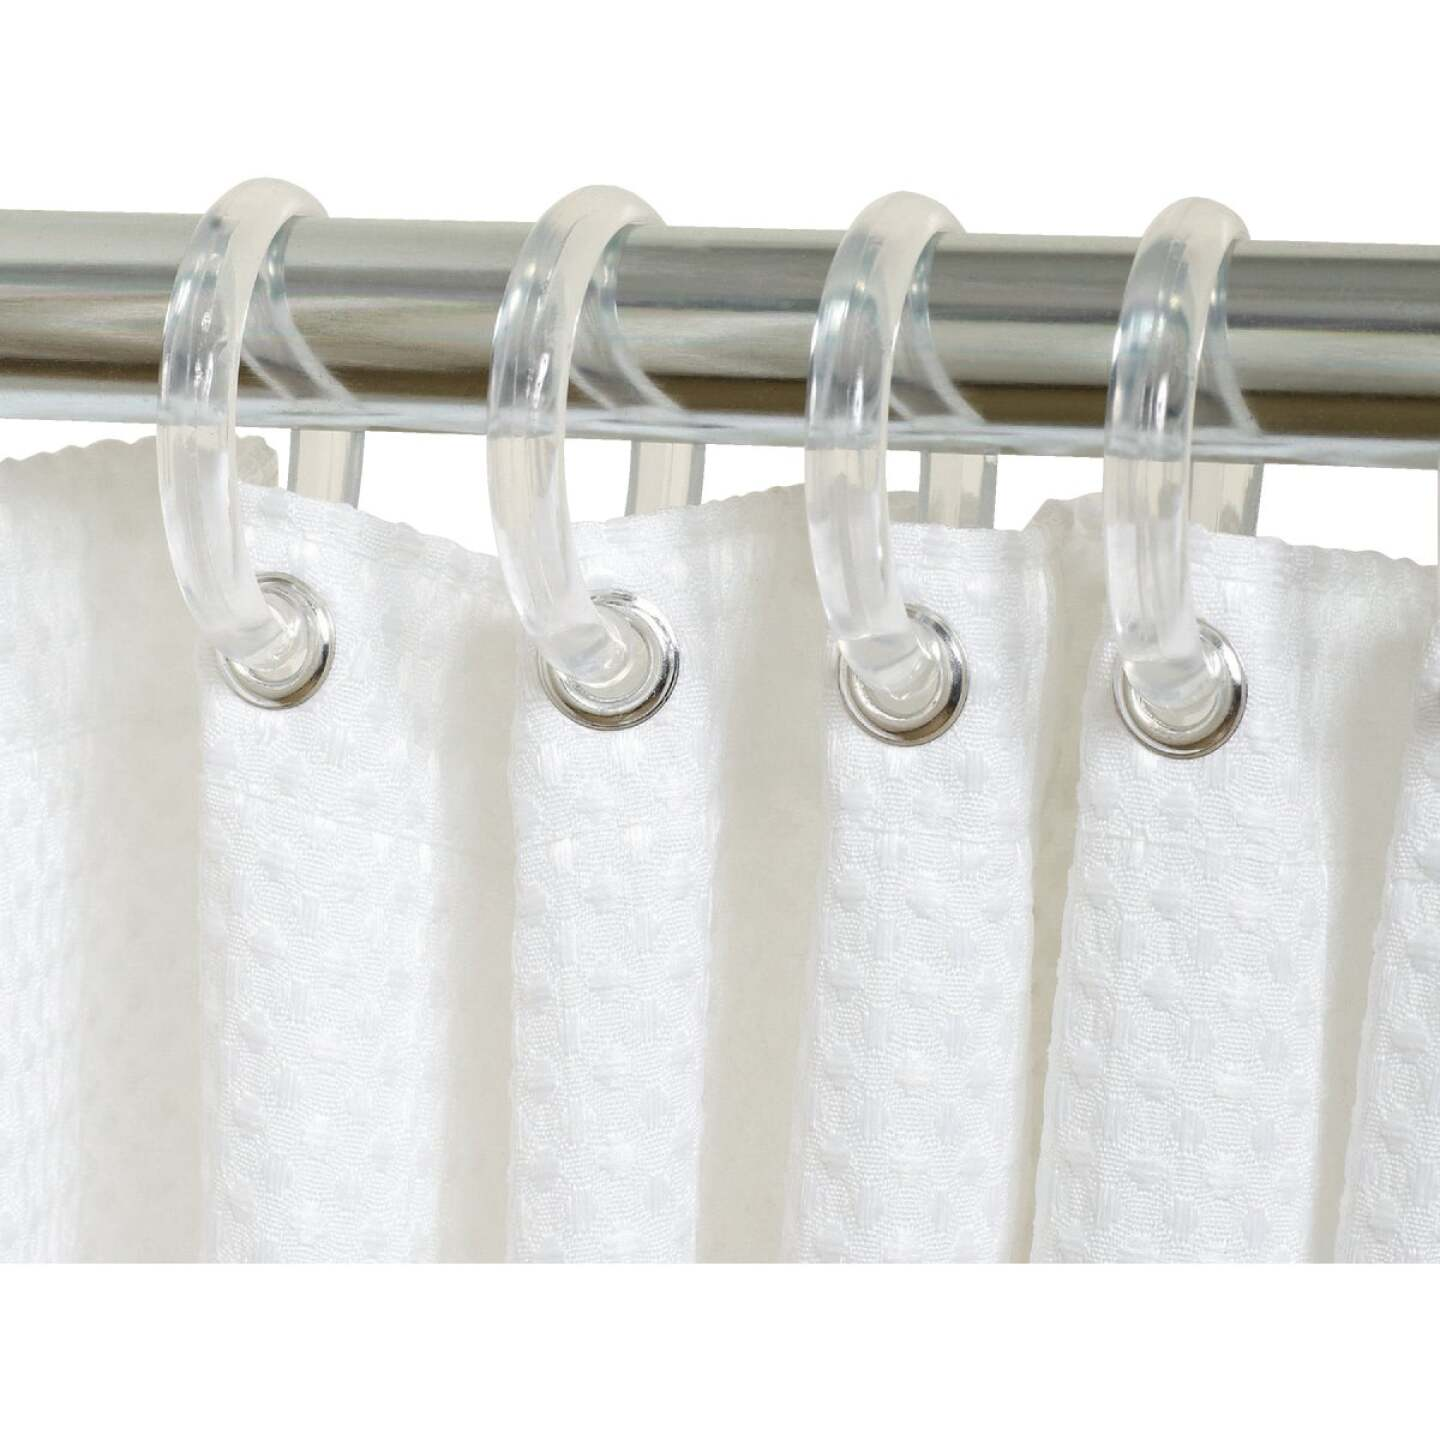 Zenith Clear Plastic Shower Curtain Ring (12 Count) Image 1